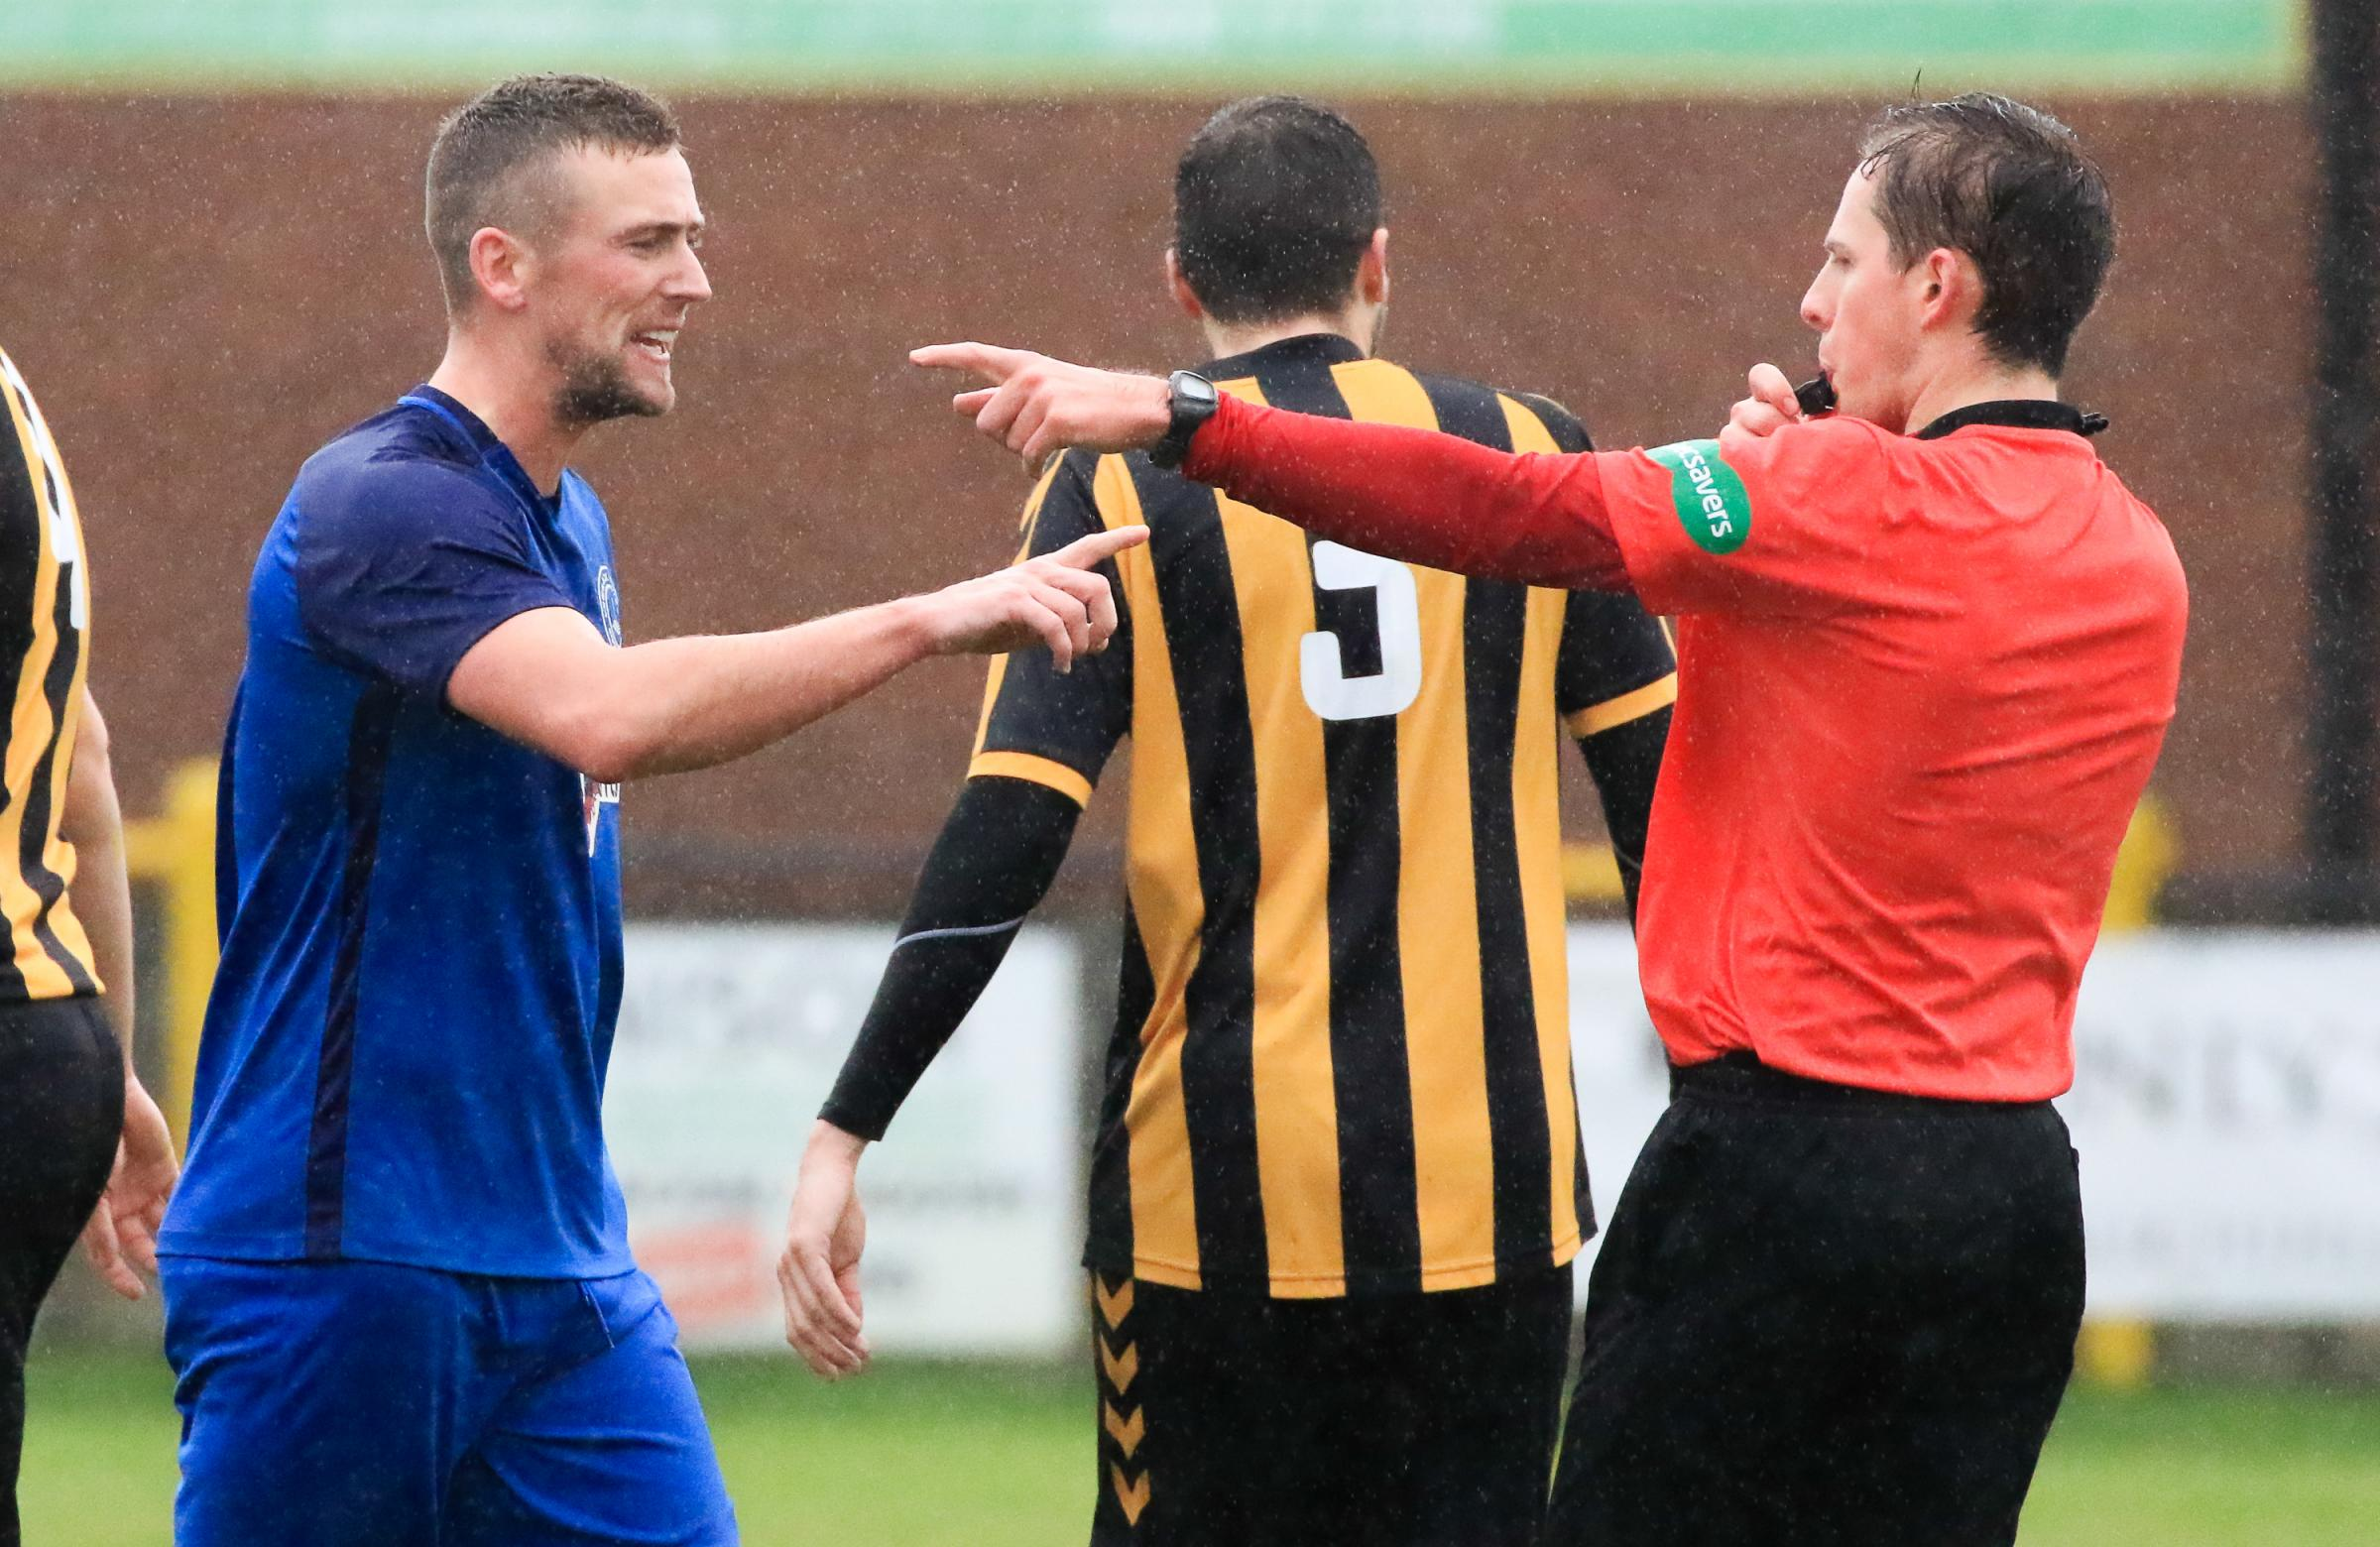 Respect for referees is a common theme at meetings of the Herefordshire Football Association